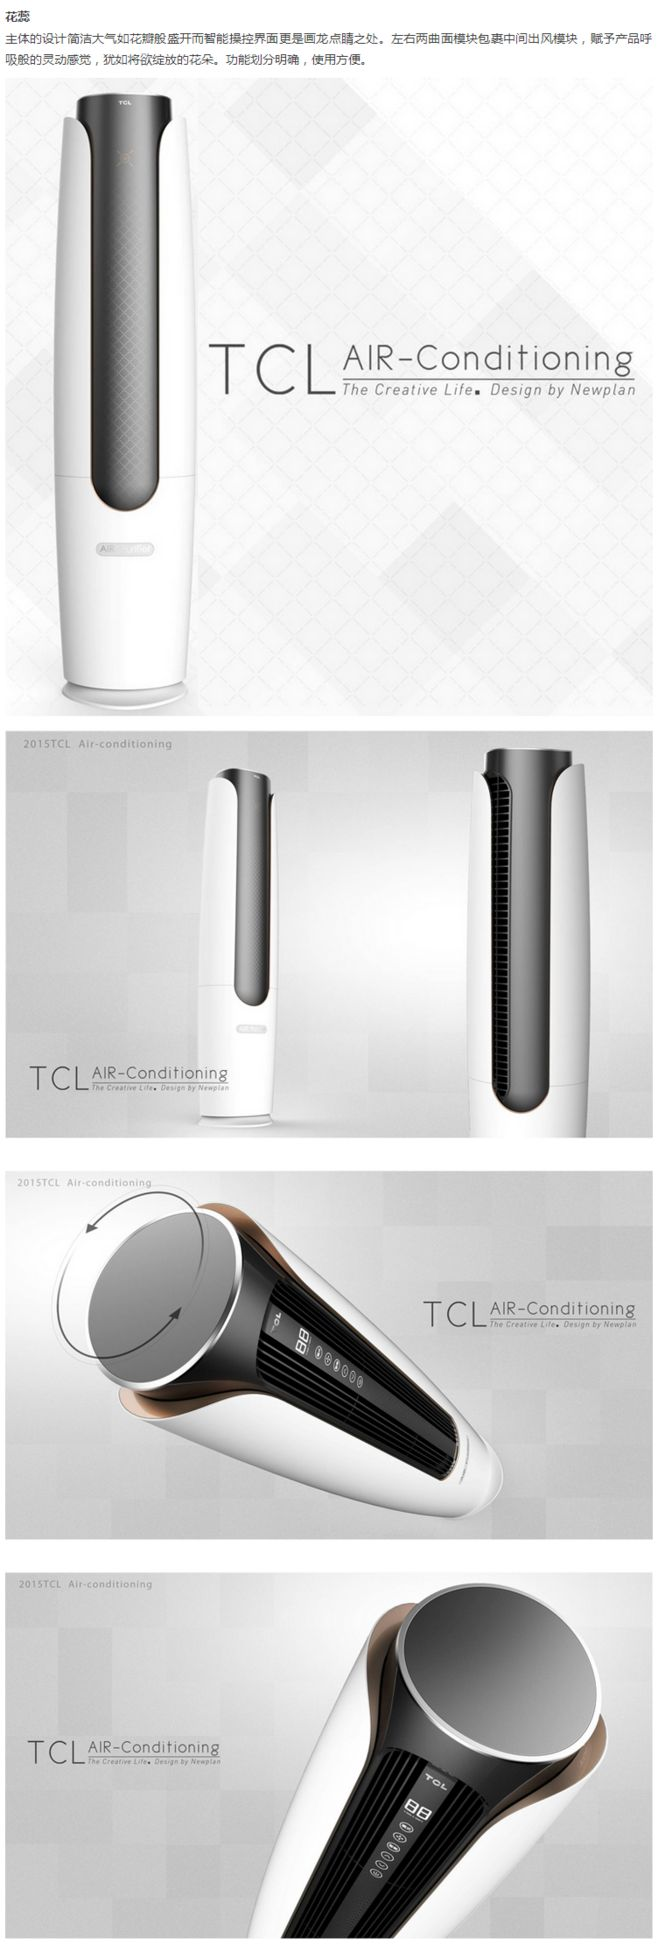 1000 Images About ID Air Products On Pinterest Air Purifier